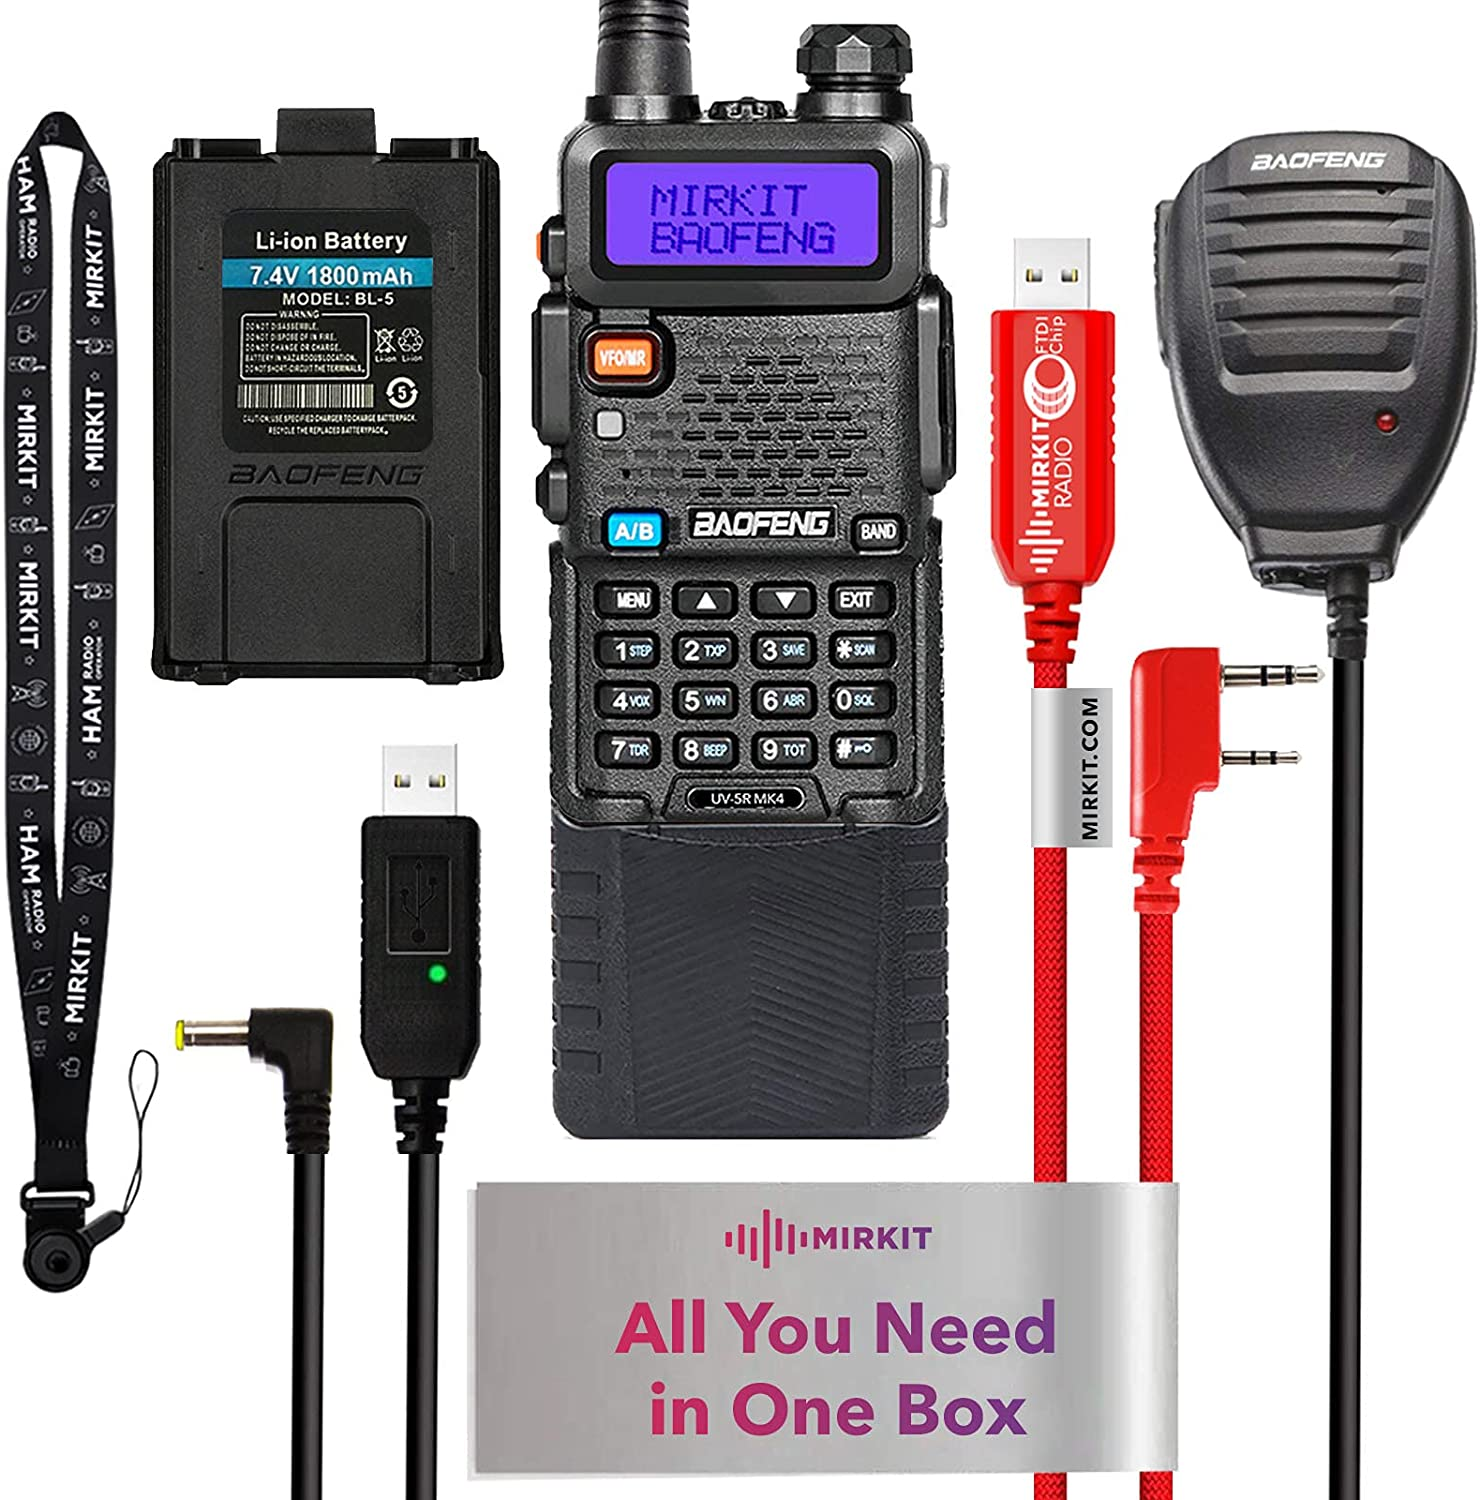 Mirkit Extra Pack Ham Radio Baofeng UV 5R MK4 8 Watt Max Power 2021 Two Way Radio with Baofeng Accessories: Battery 3800 mAh, Handheld Speaker Mic, Programming Cable and Mirkit Software - Extended Kit